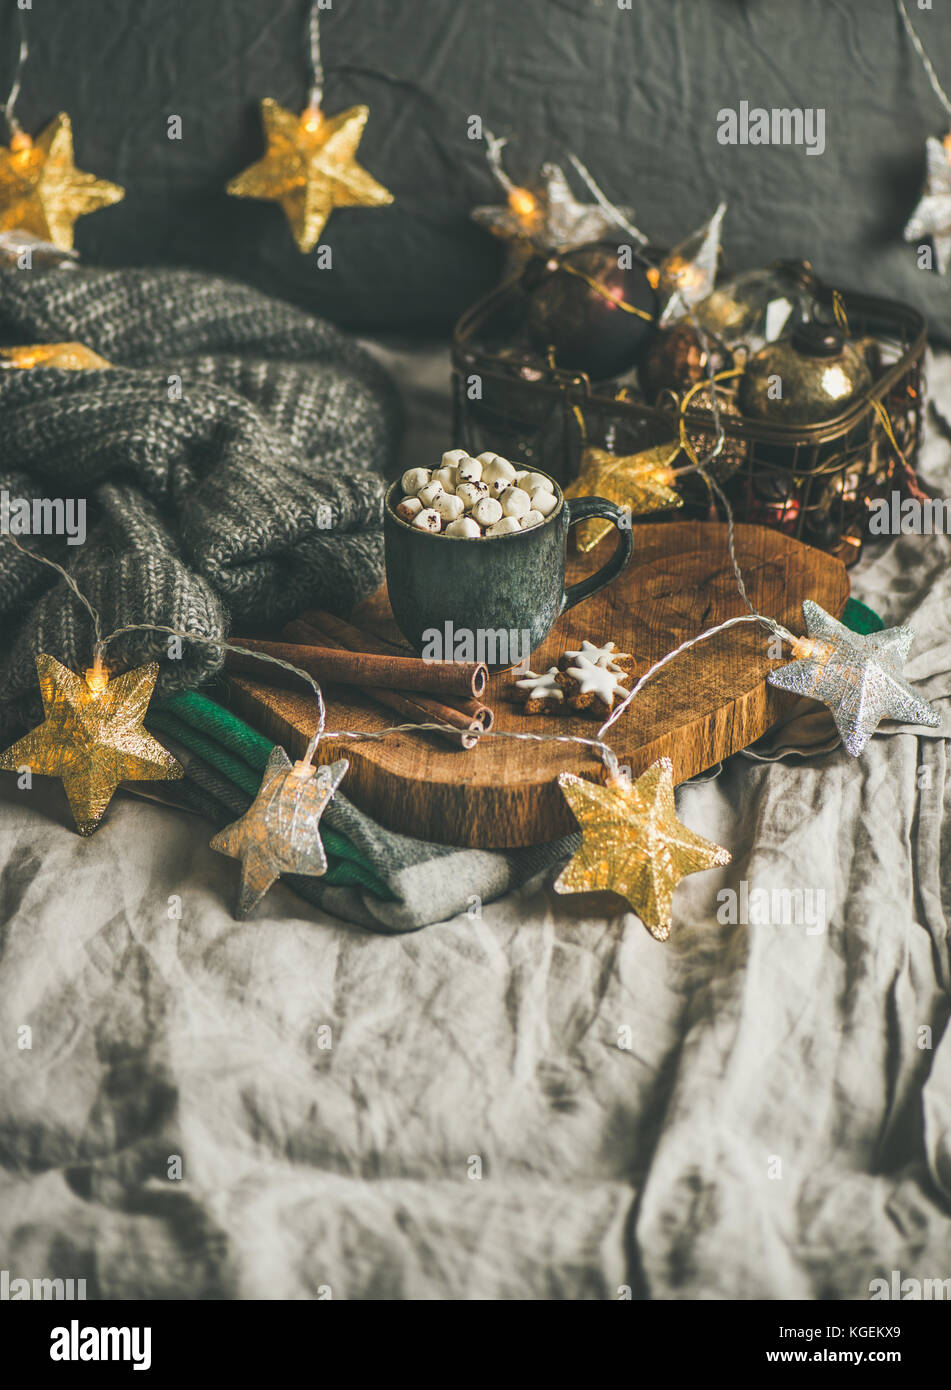 Christmas winter hot chocolate with marshmellows and cinnamon, copy space - Stock Image